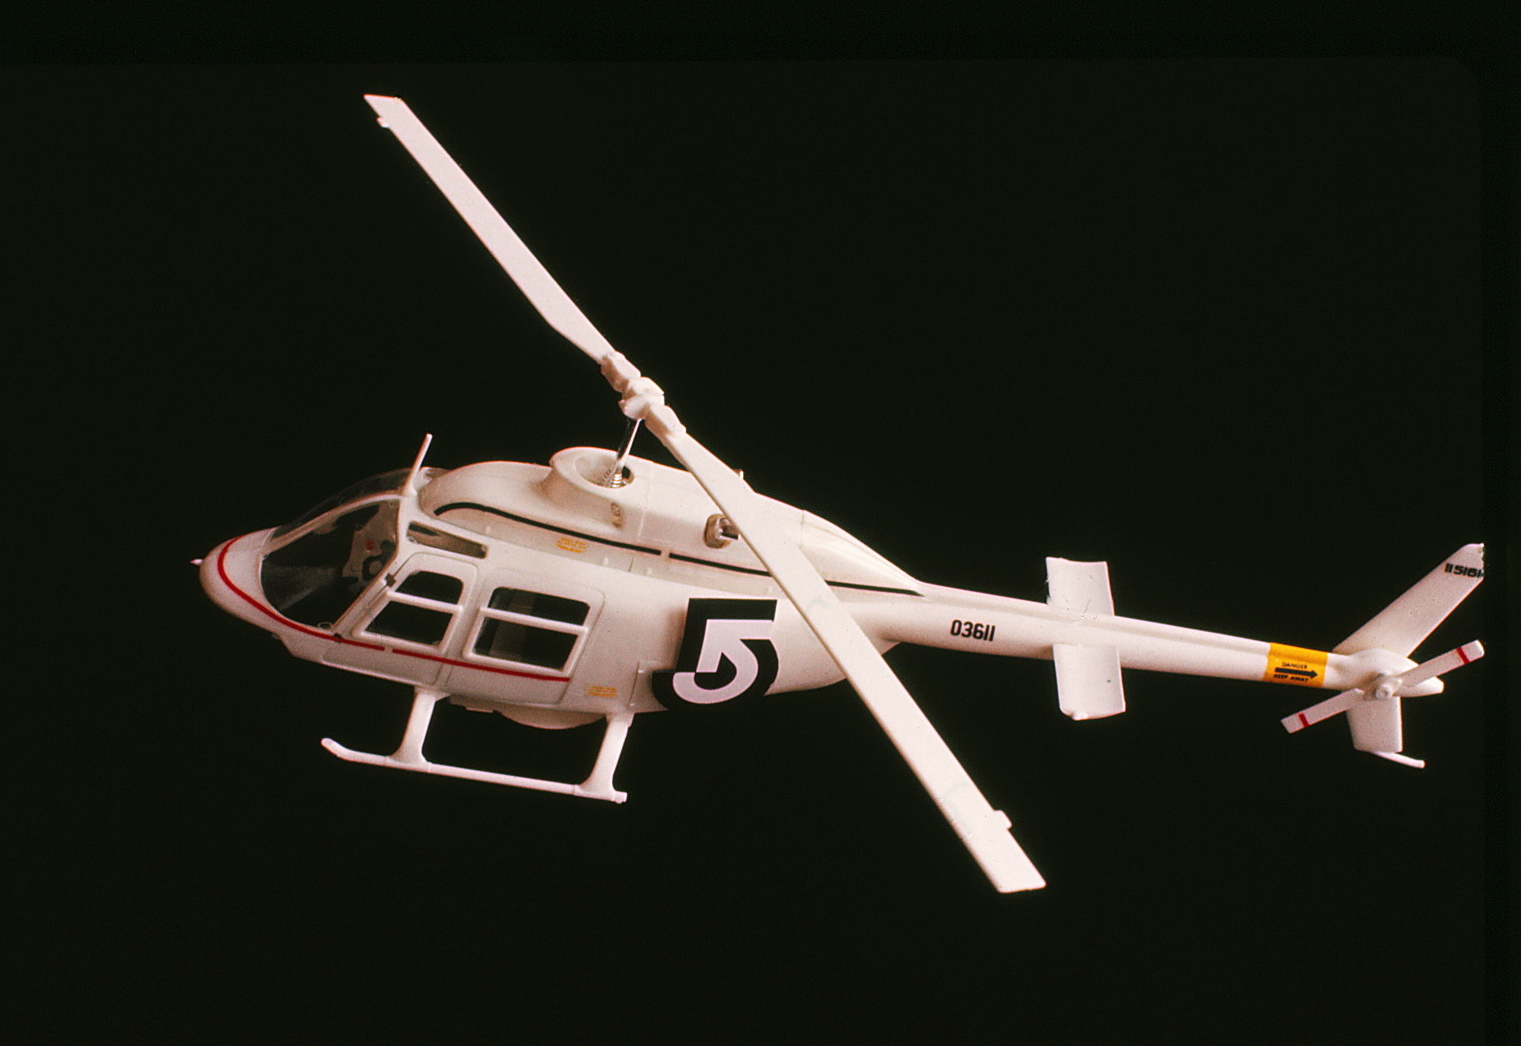 Model of helicopter with logo on it